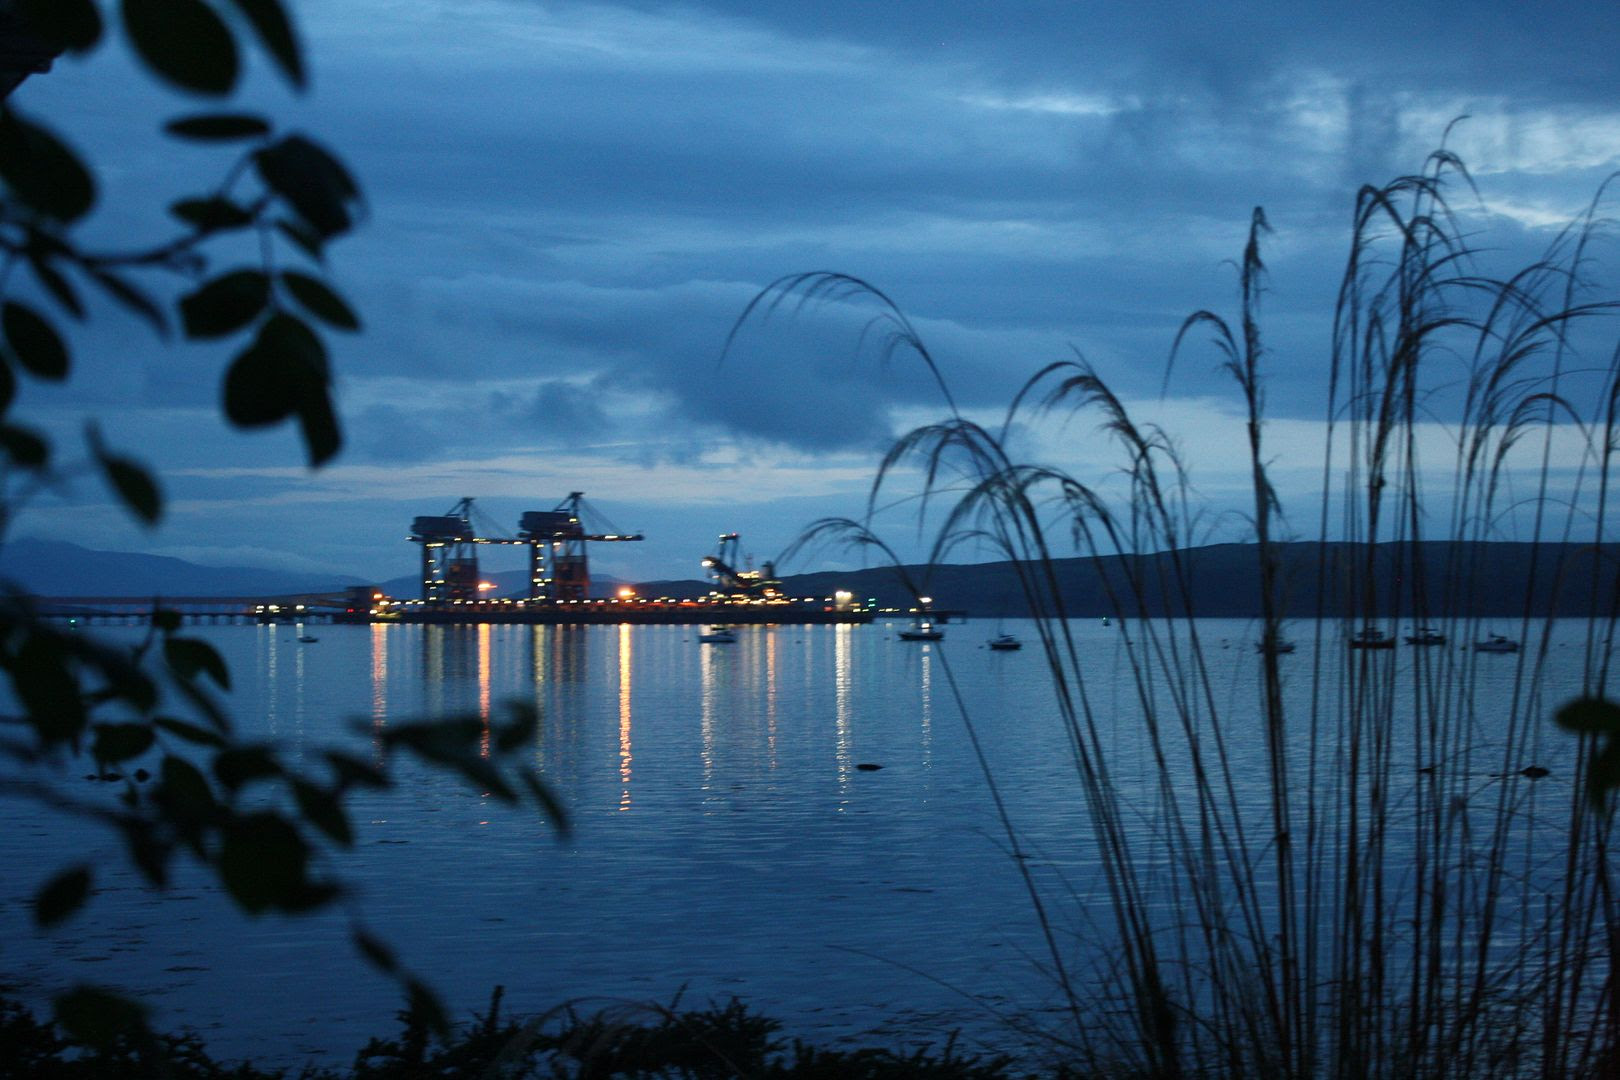 Night View of Water in Fairlie, Scotland photo 2014-05-142200_zpsb62f421d.jpg